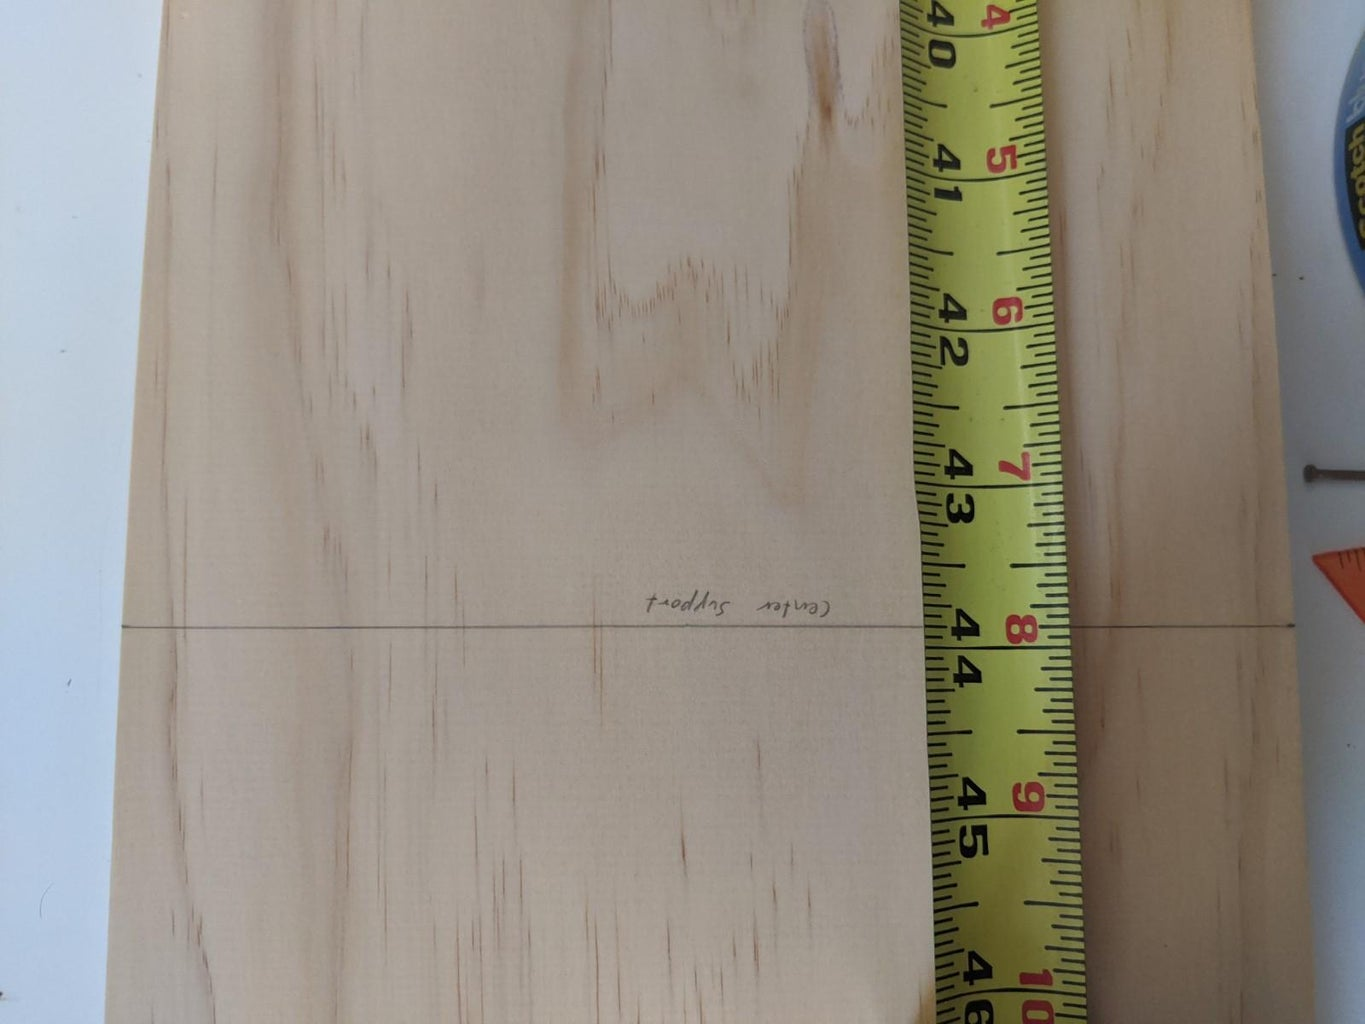 Marking the Boards (Center Support)